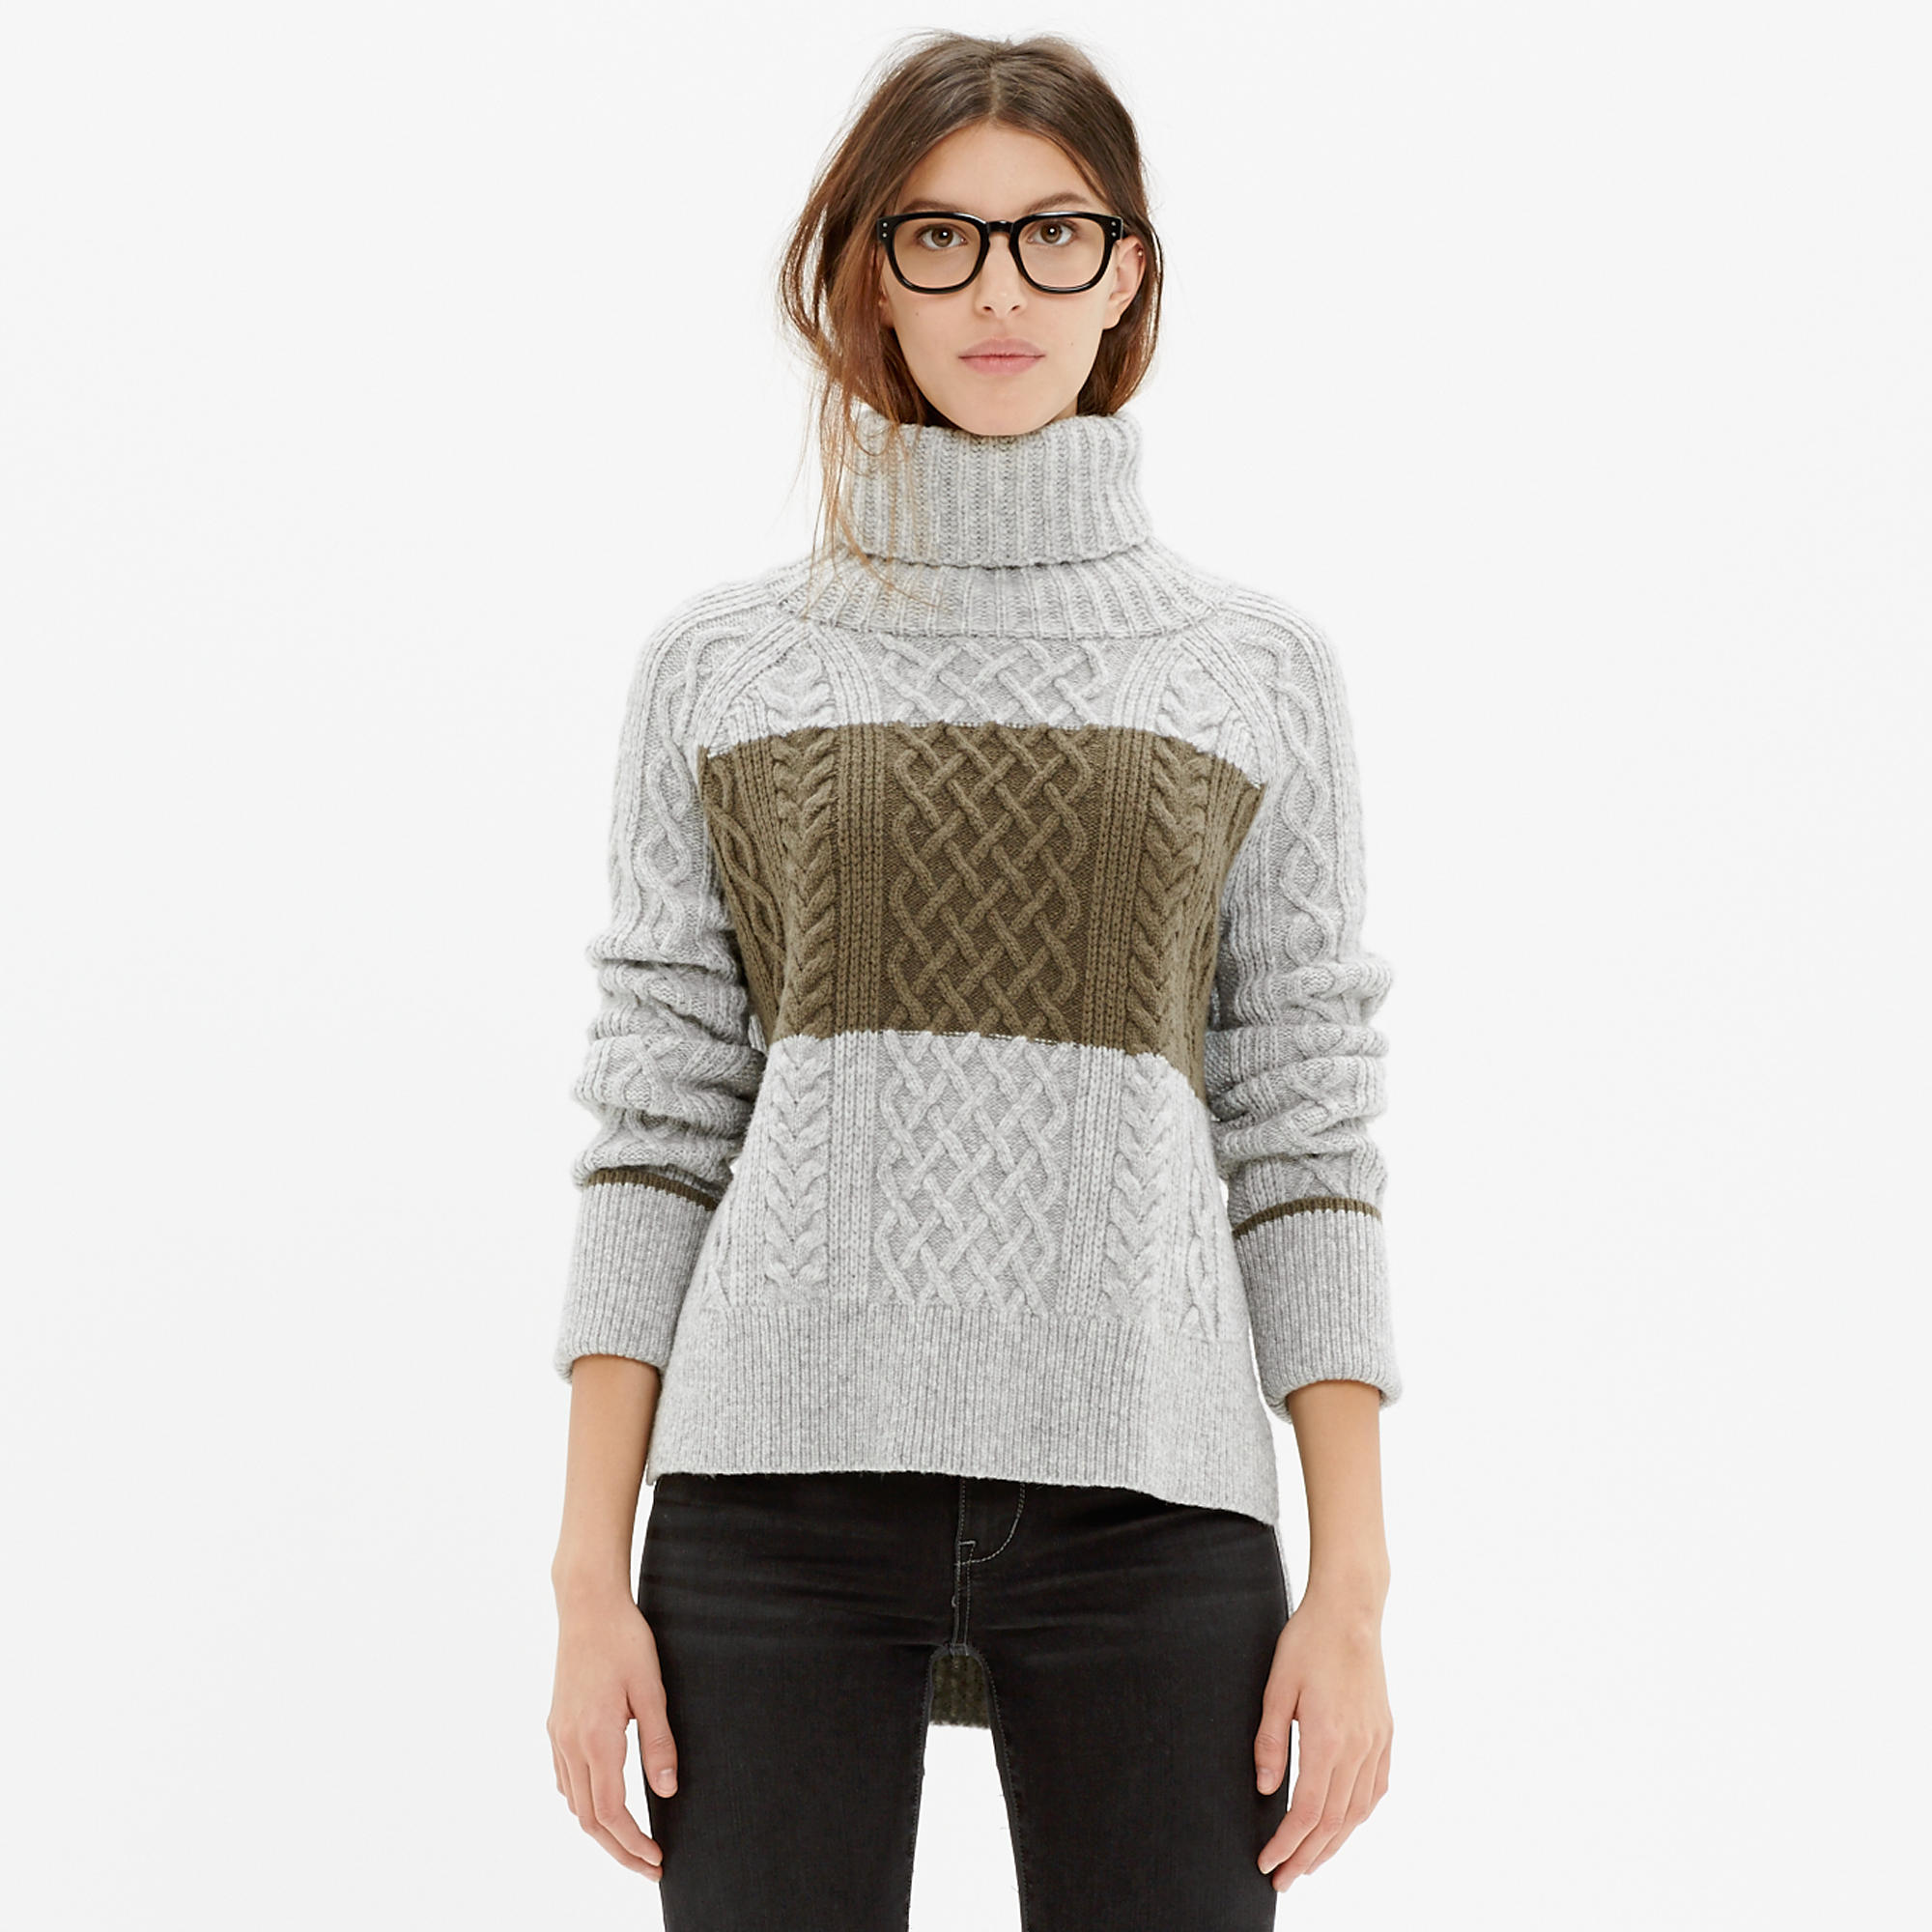 Cityblock Turtleneck Sweater in Colorblock : pullovers | Madewell